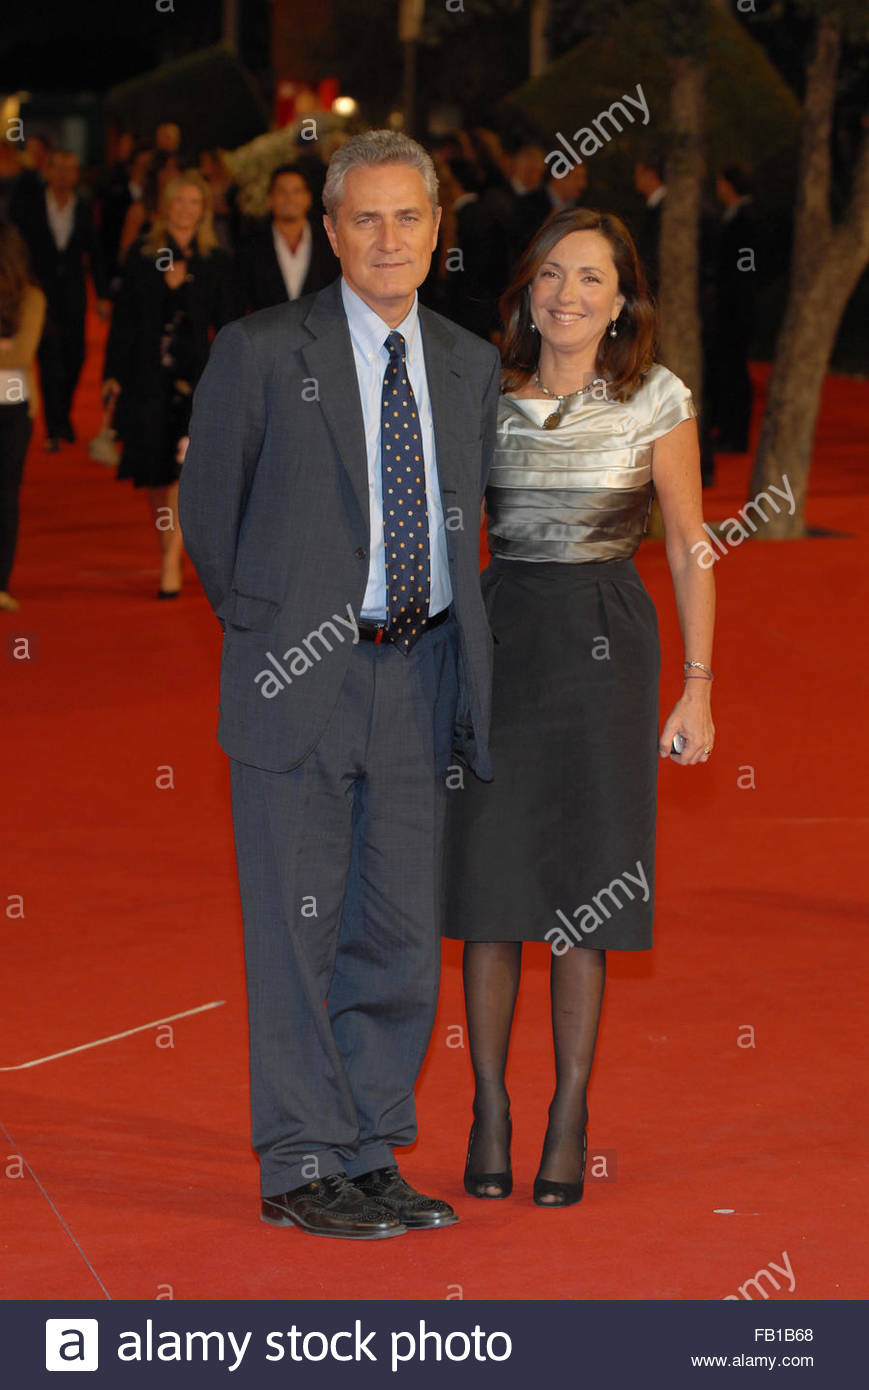 Barbara Palombelli And Francesco Rutelli High Resolution Stock Photography And Images Alamy